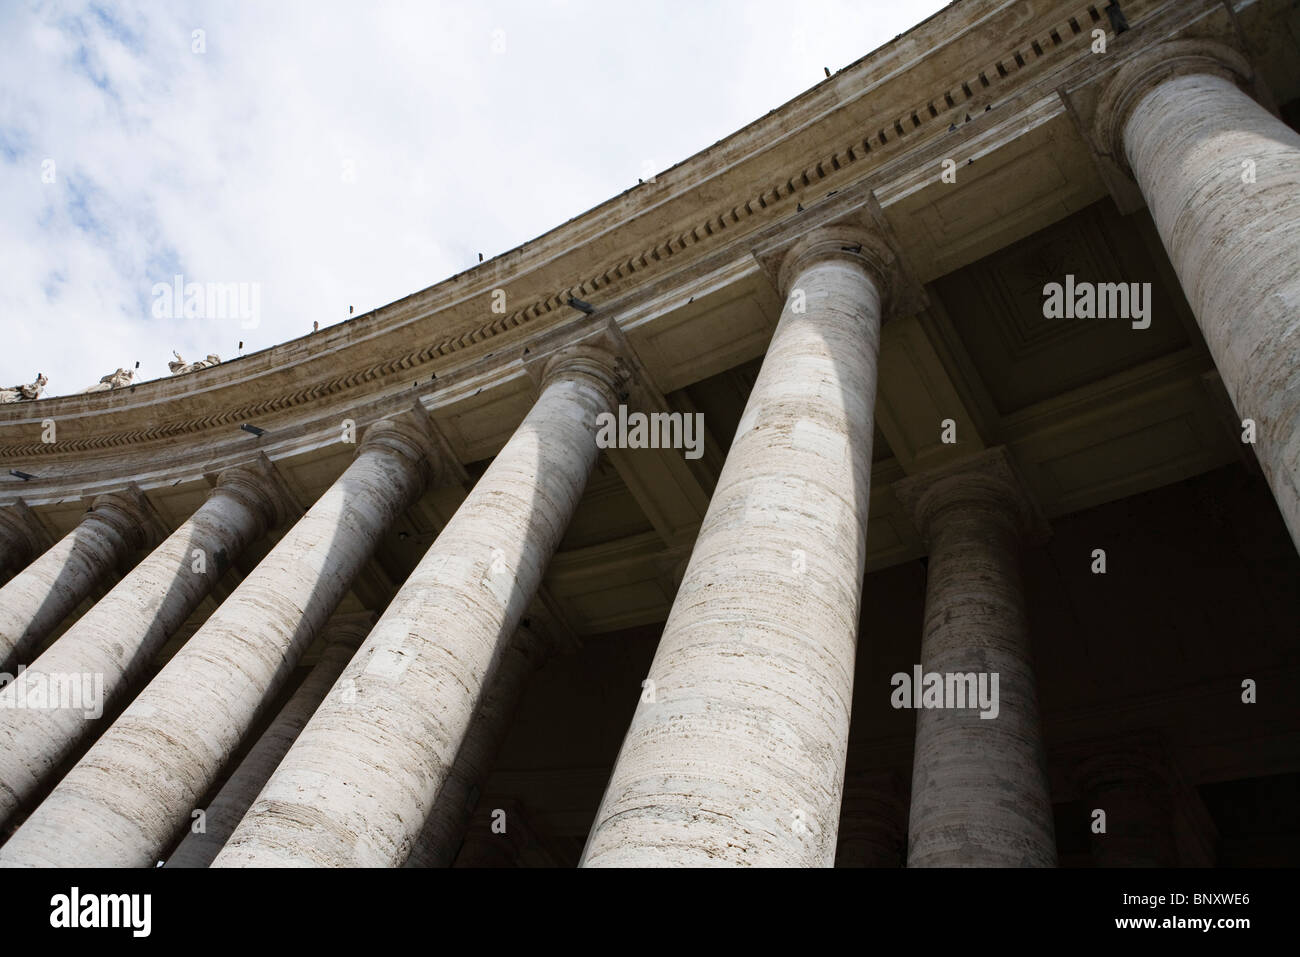 Colonnade of St. Peter's Square, Rome, Italy - Stock Image